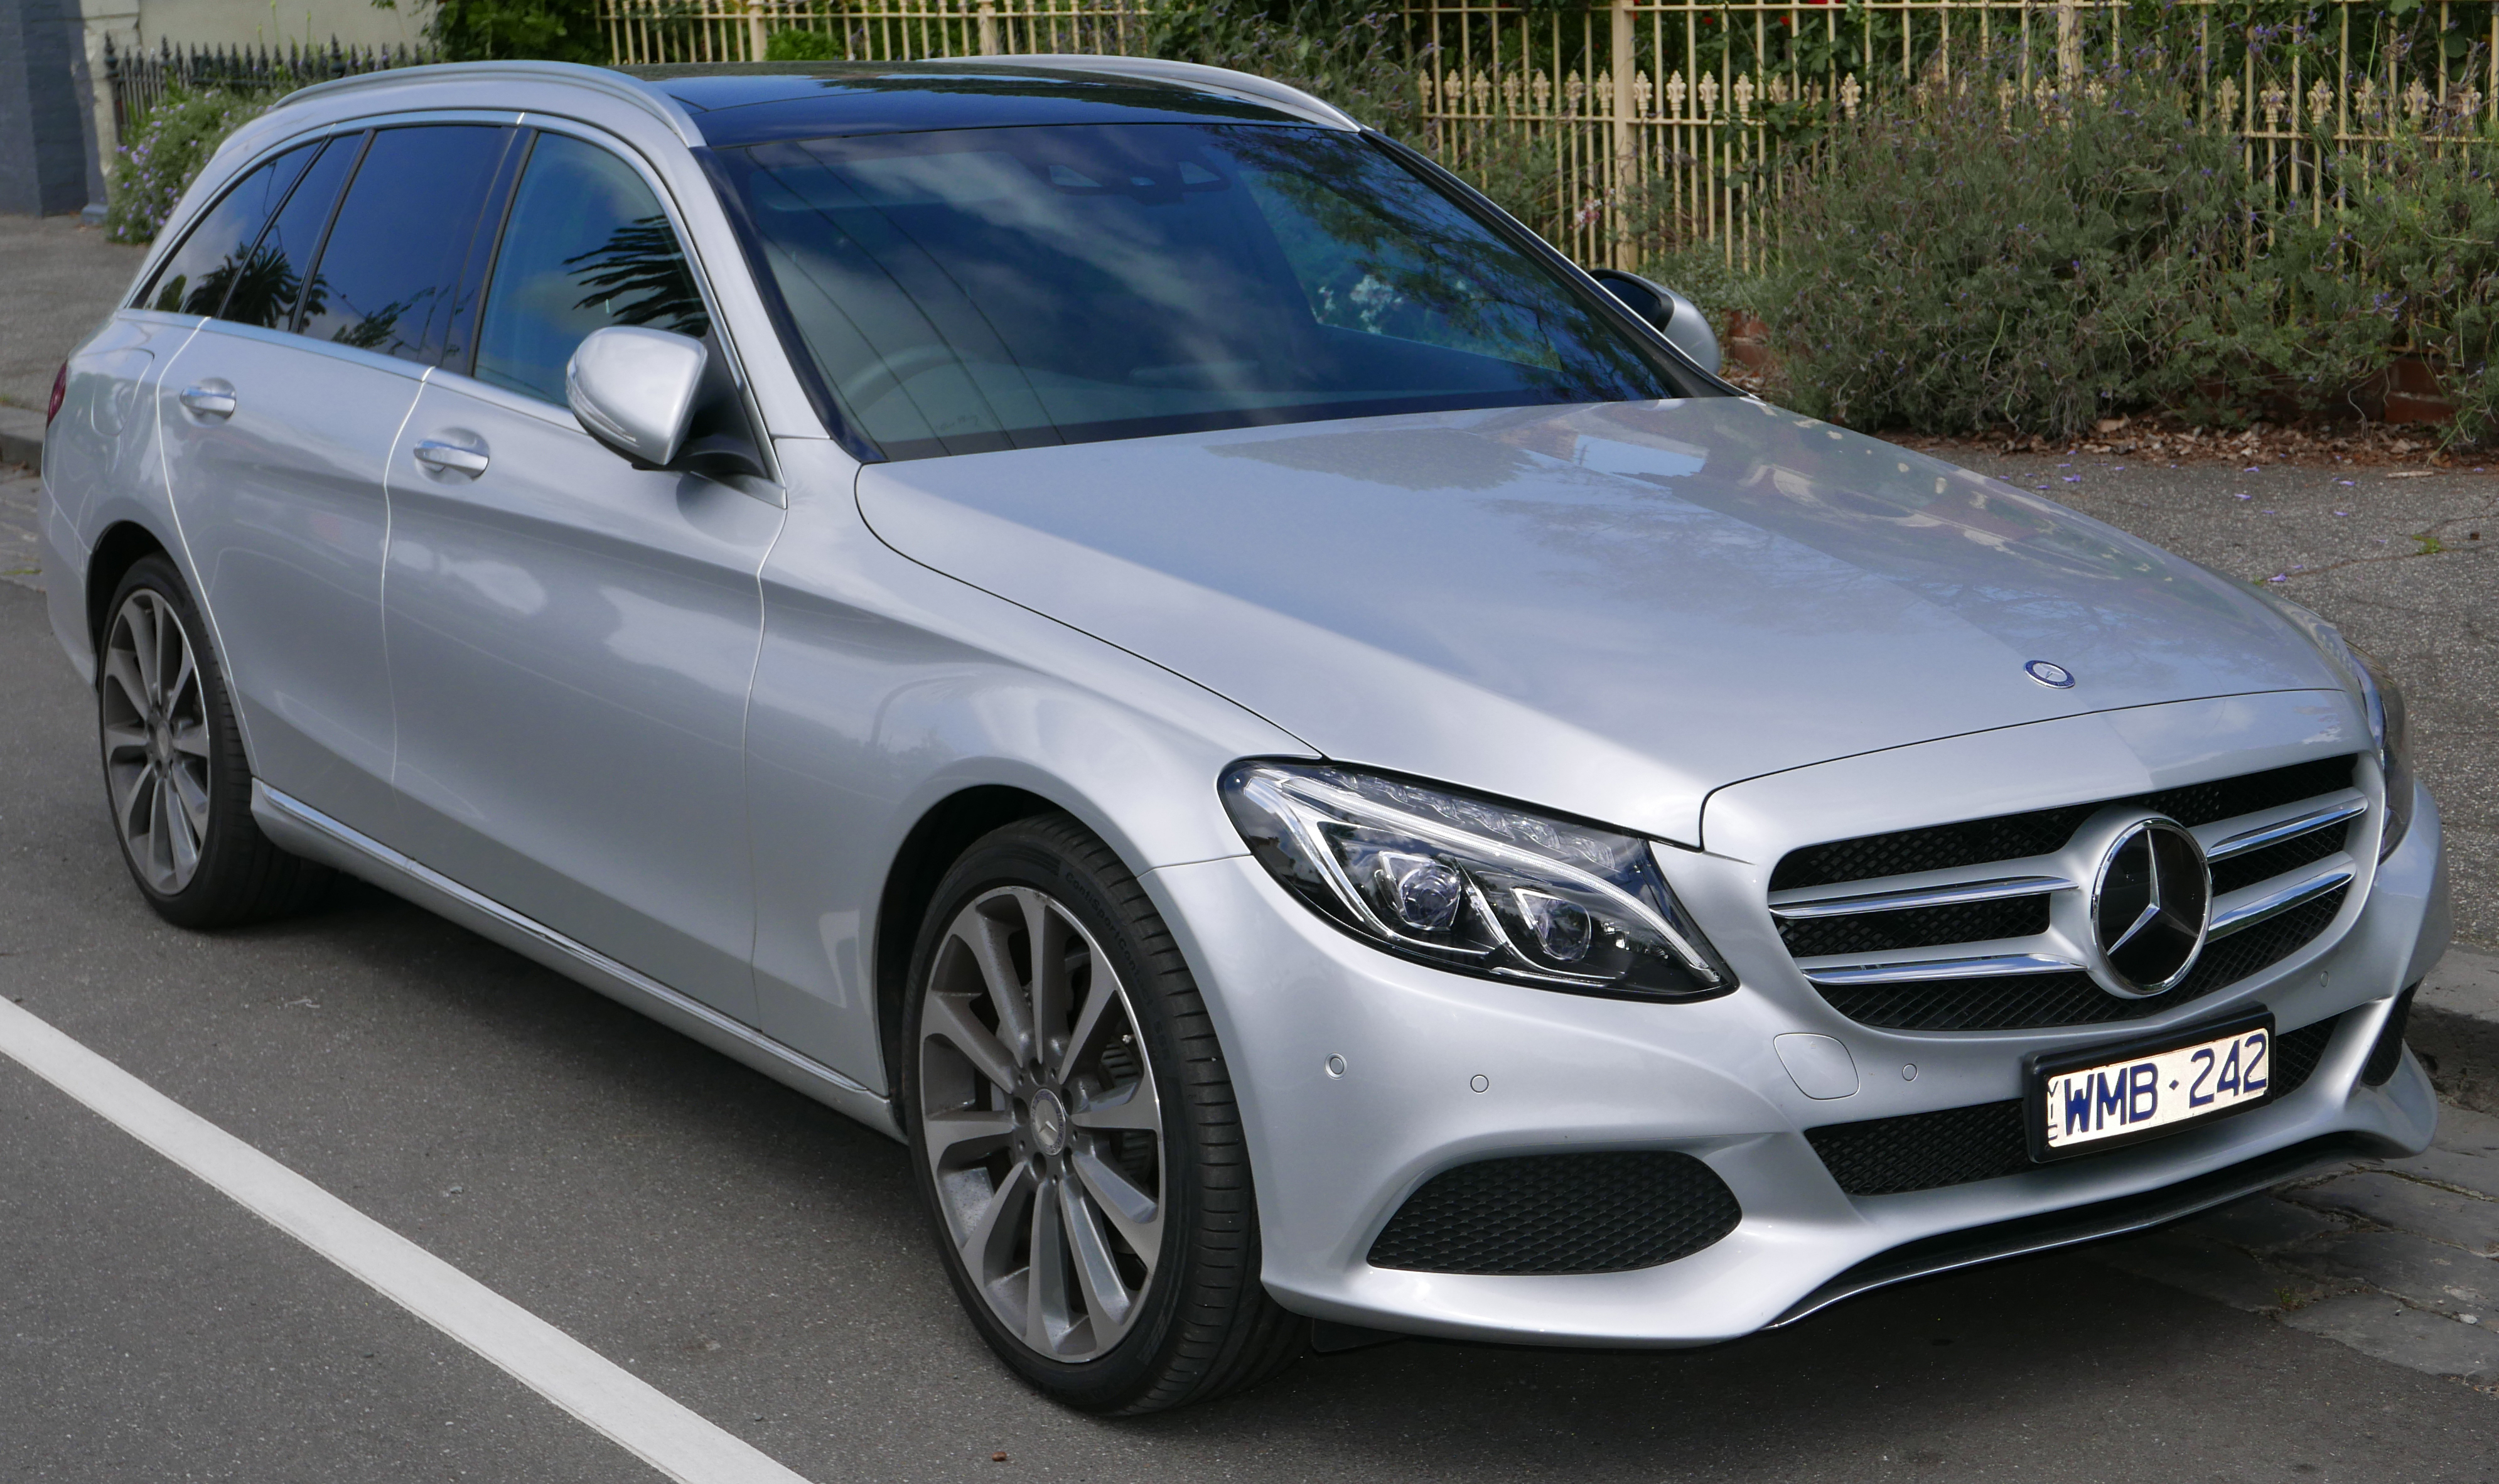 file 2014 mercedes benz c 250 s 205 station wagon 2015 11 13 wikimedia commons. Black Bedroom Furniture Sets. Home Design Ideas